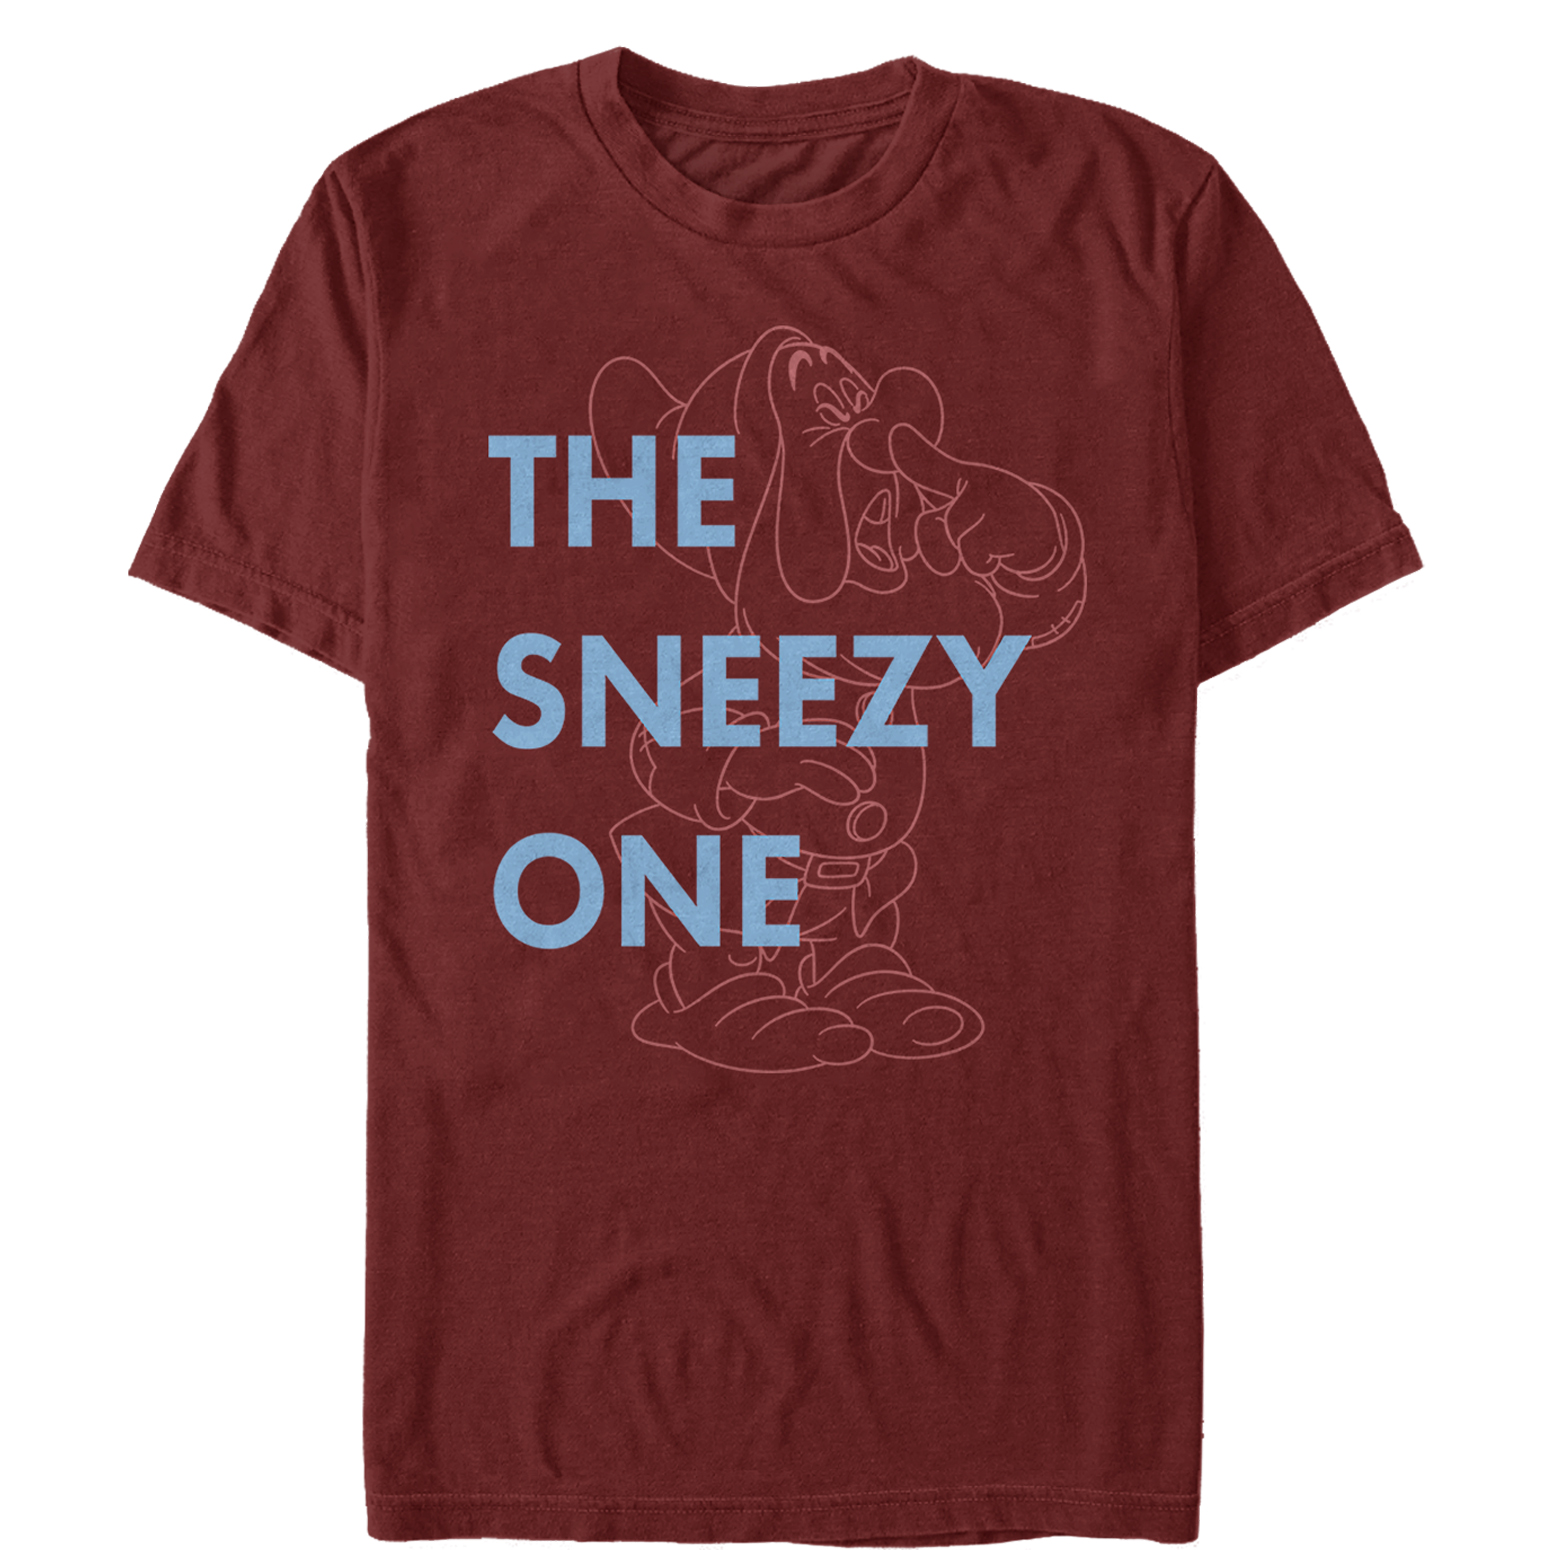 Snow White and the Seven Dwarves Men's Sneezy One T-Shirt